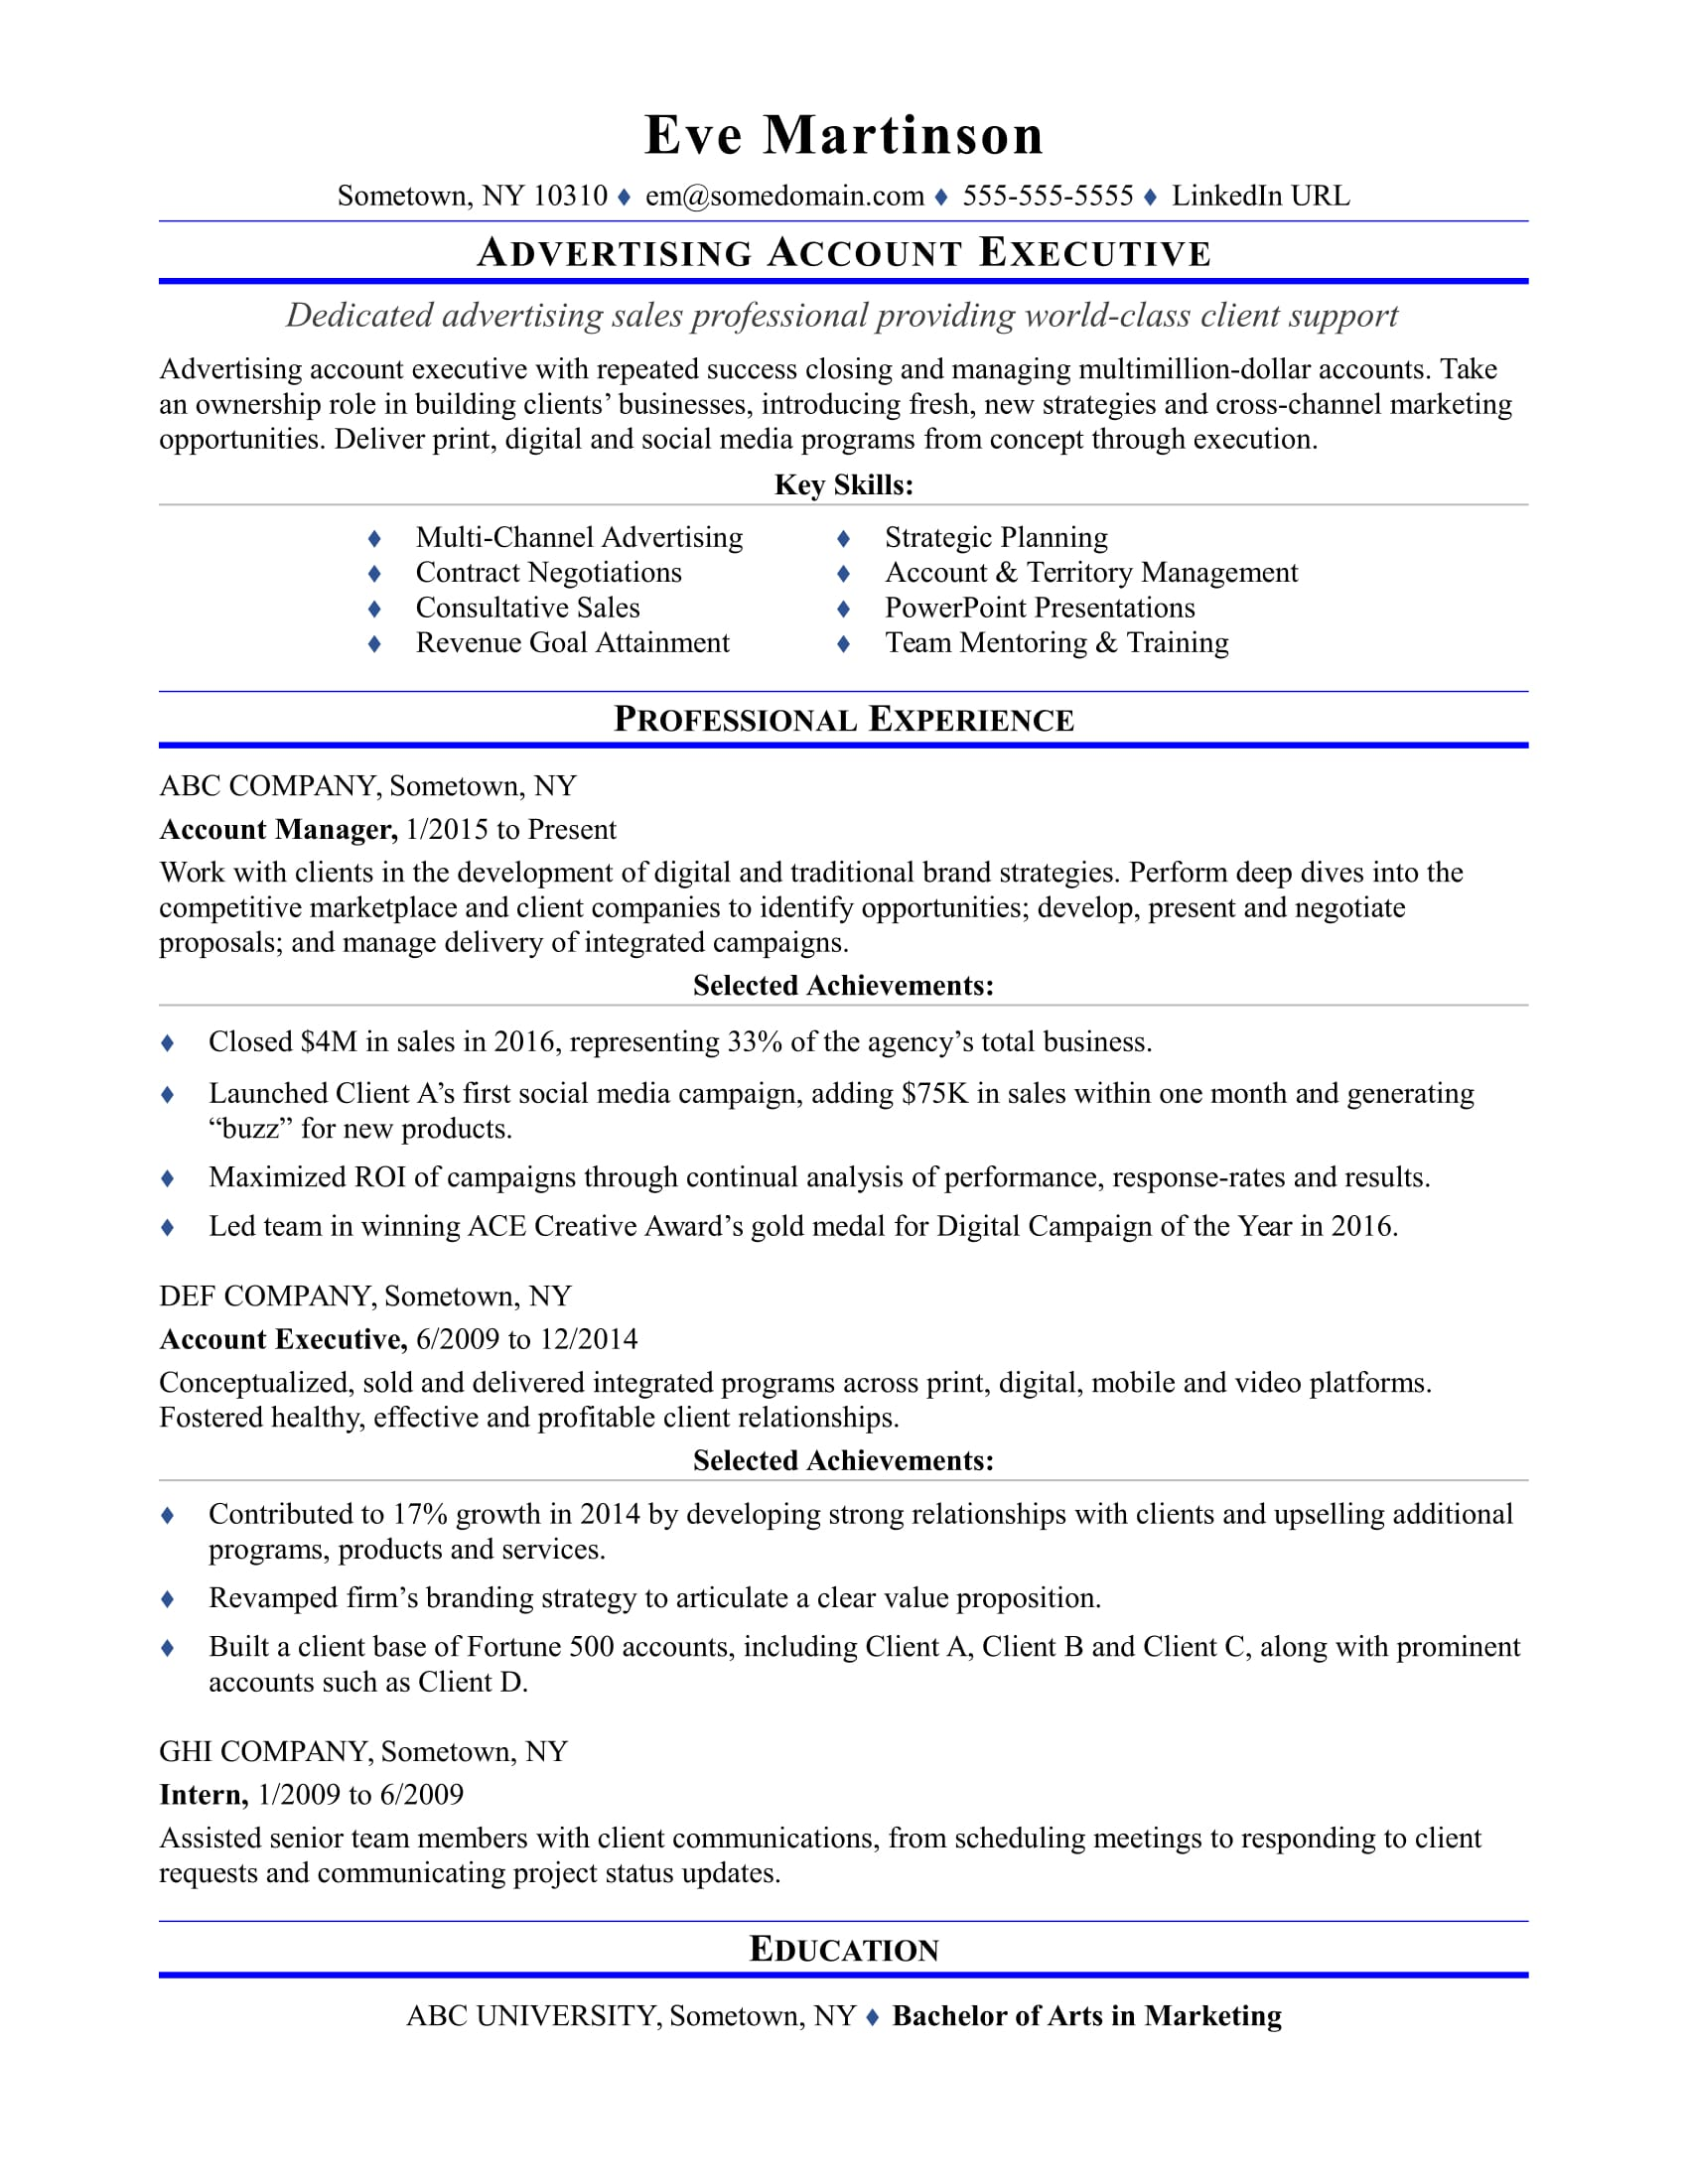 sample resume for an advertising account executive monster best manager college student Resume Best Resume For Account Manager